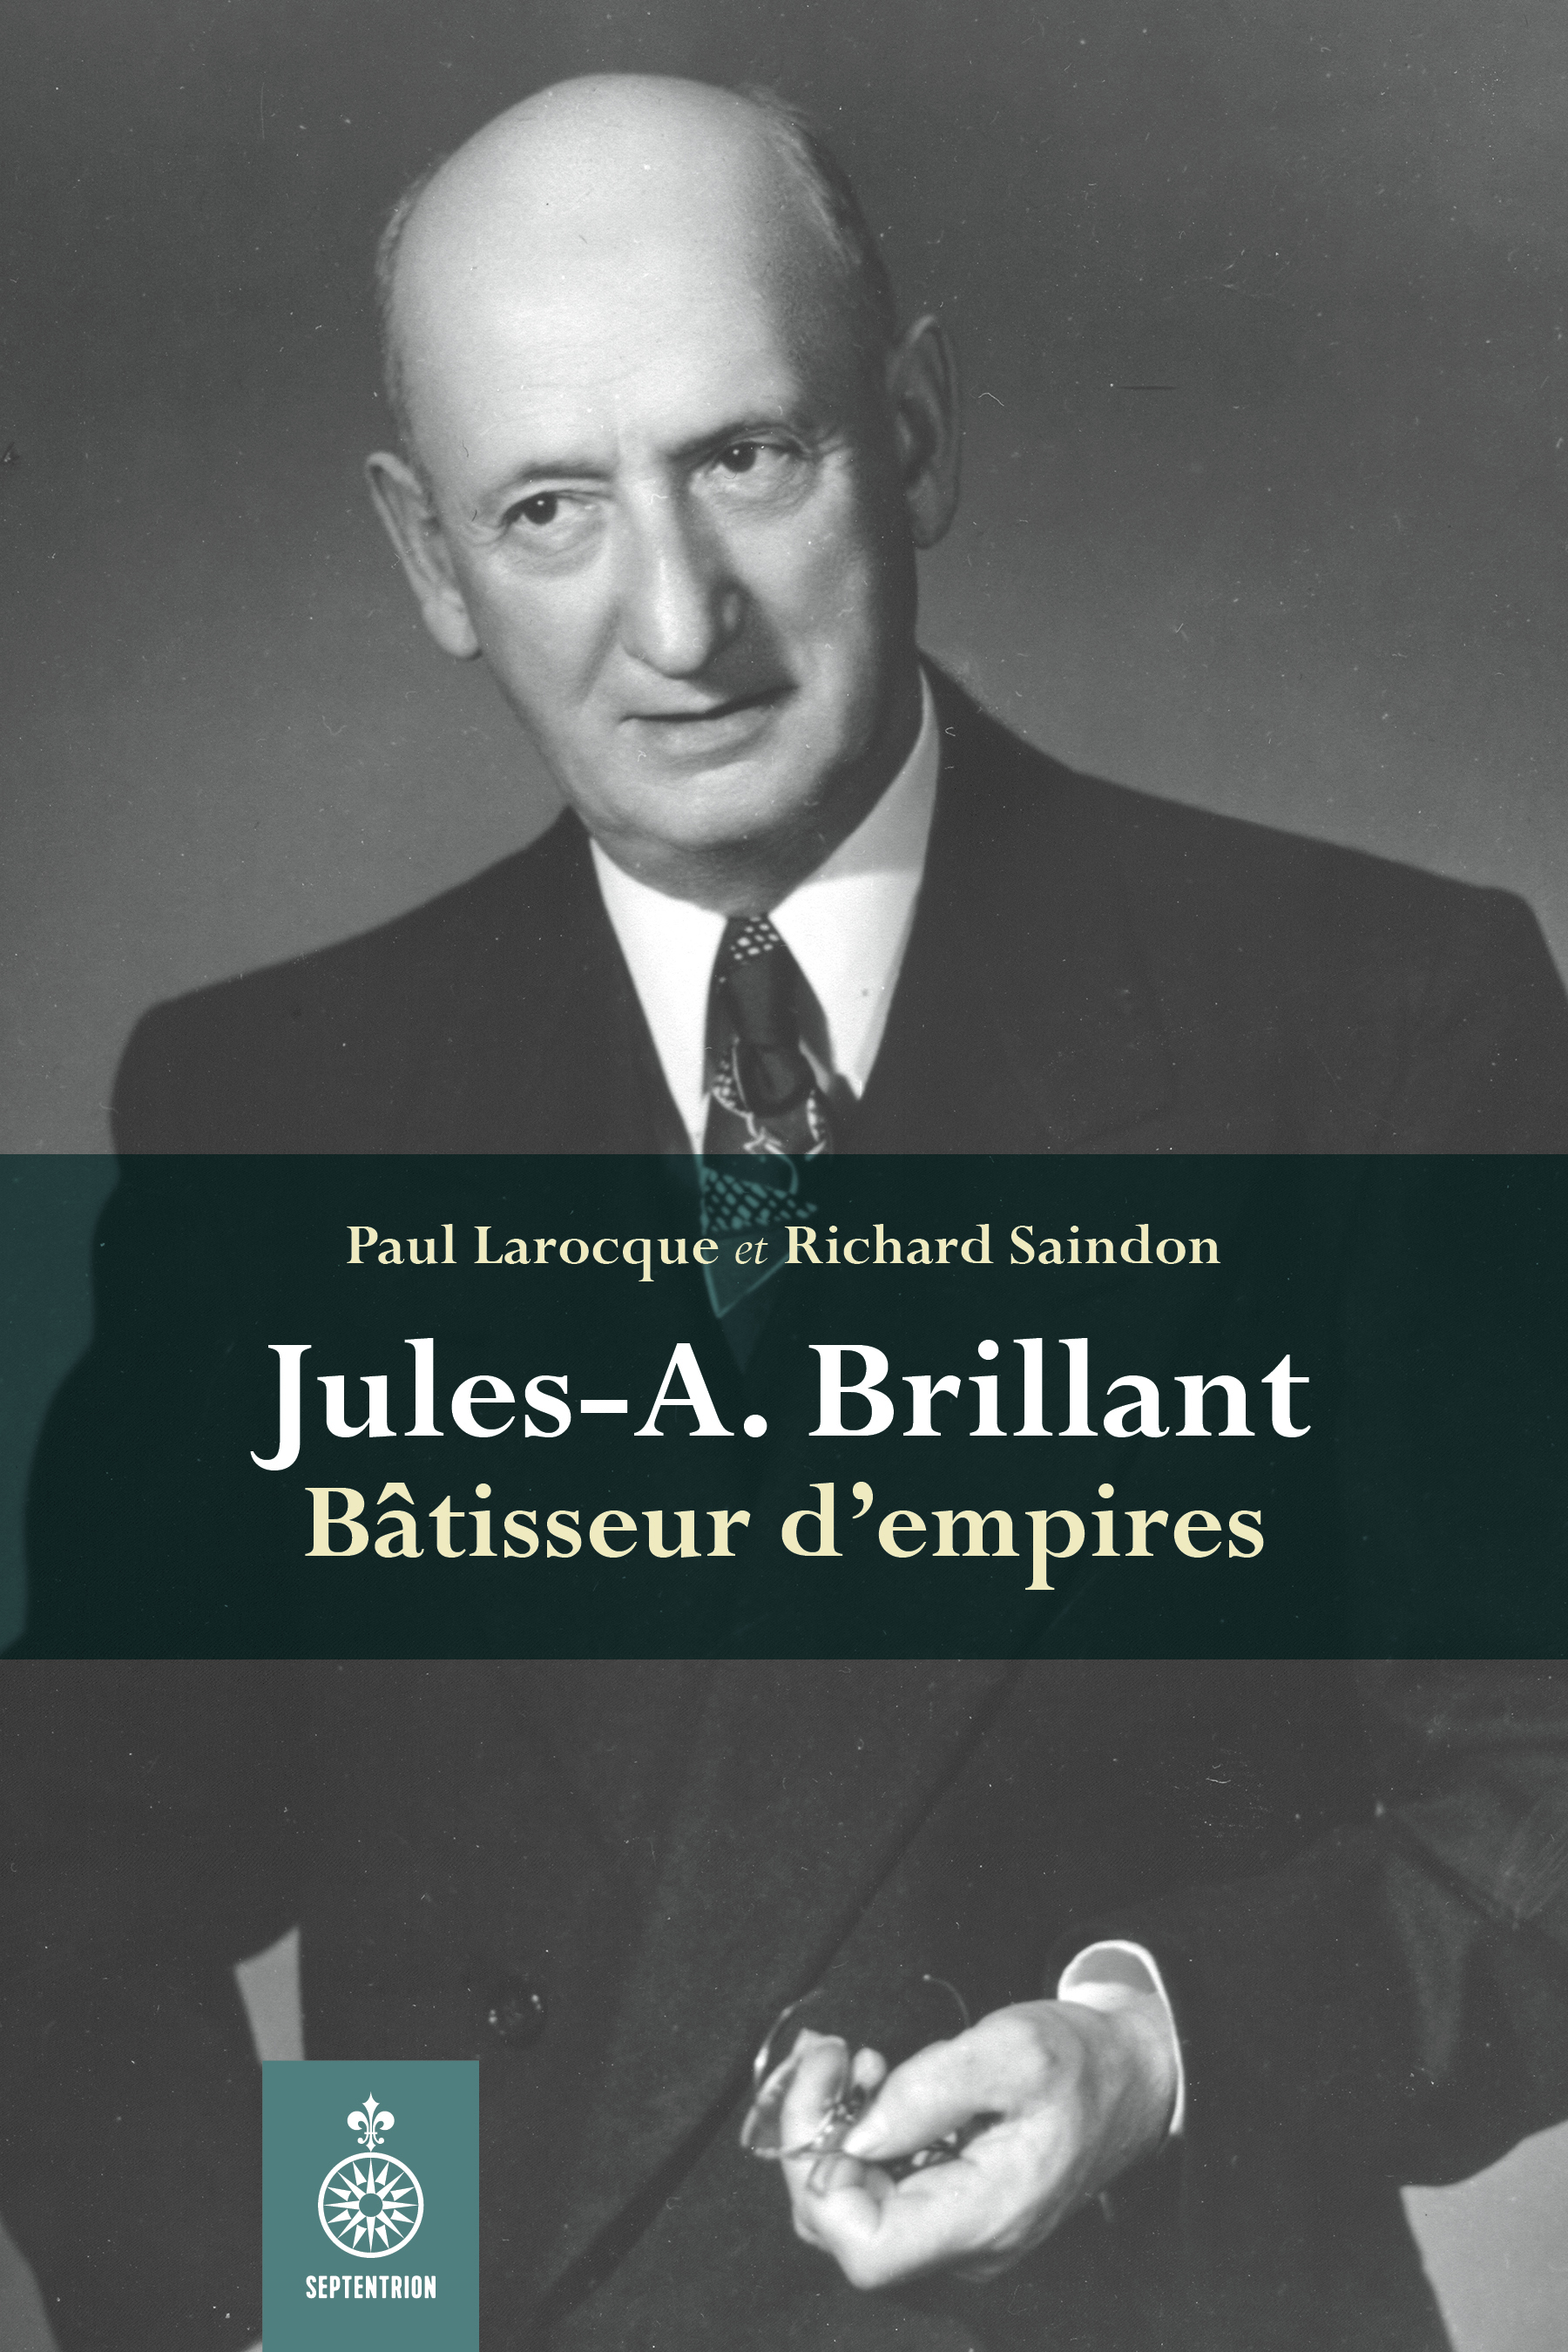 Jules-A. Brillant : bâtisseur d'empires, Richard Saindon